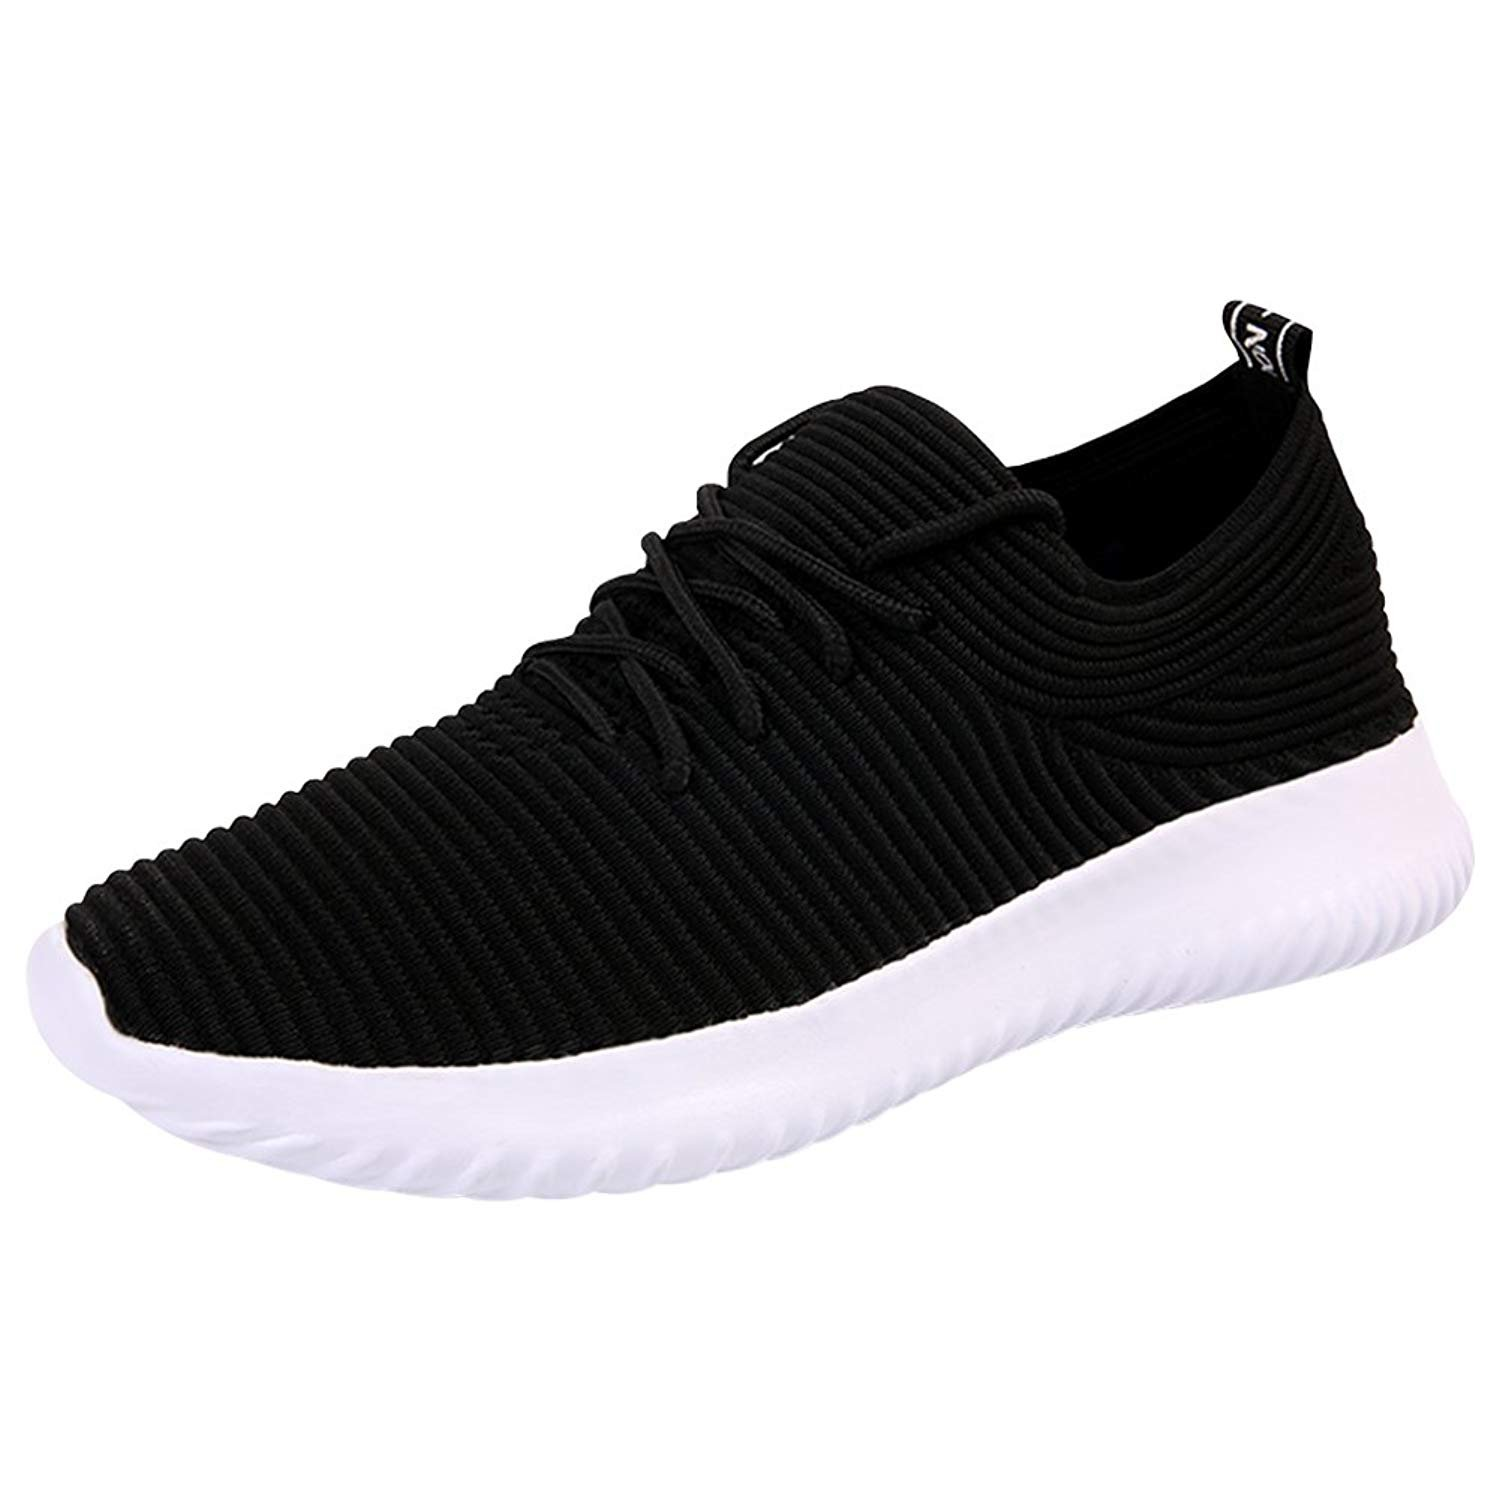 Padcod Running Shoes Flyknit Lightweight Athletic Casual Sneakers Sports Gym Tennis Shoes for Men and Women